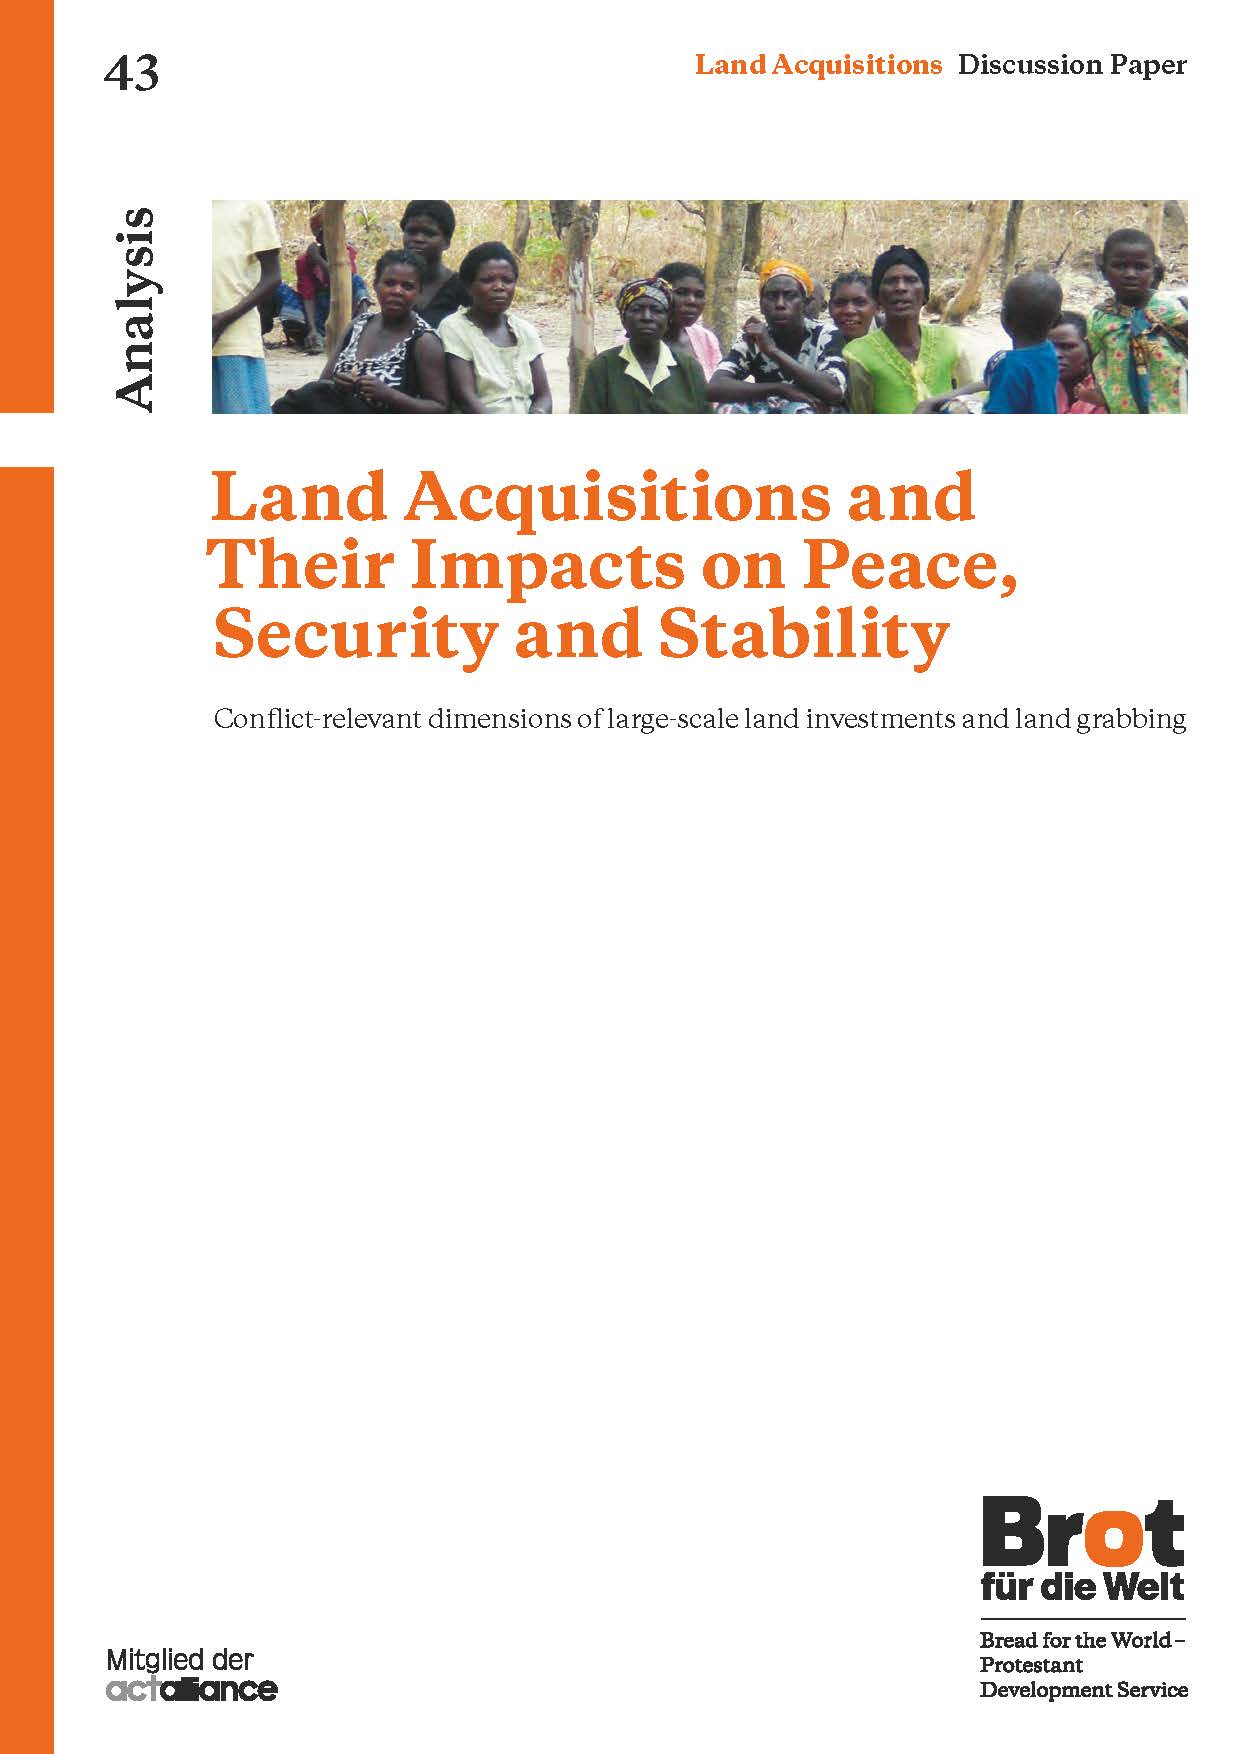 Analysis 43: Land Acquisitions and Their Impacts on Peace, Security and Stability